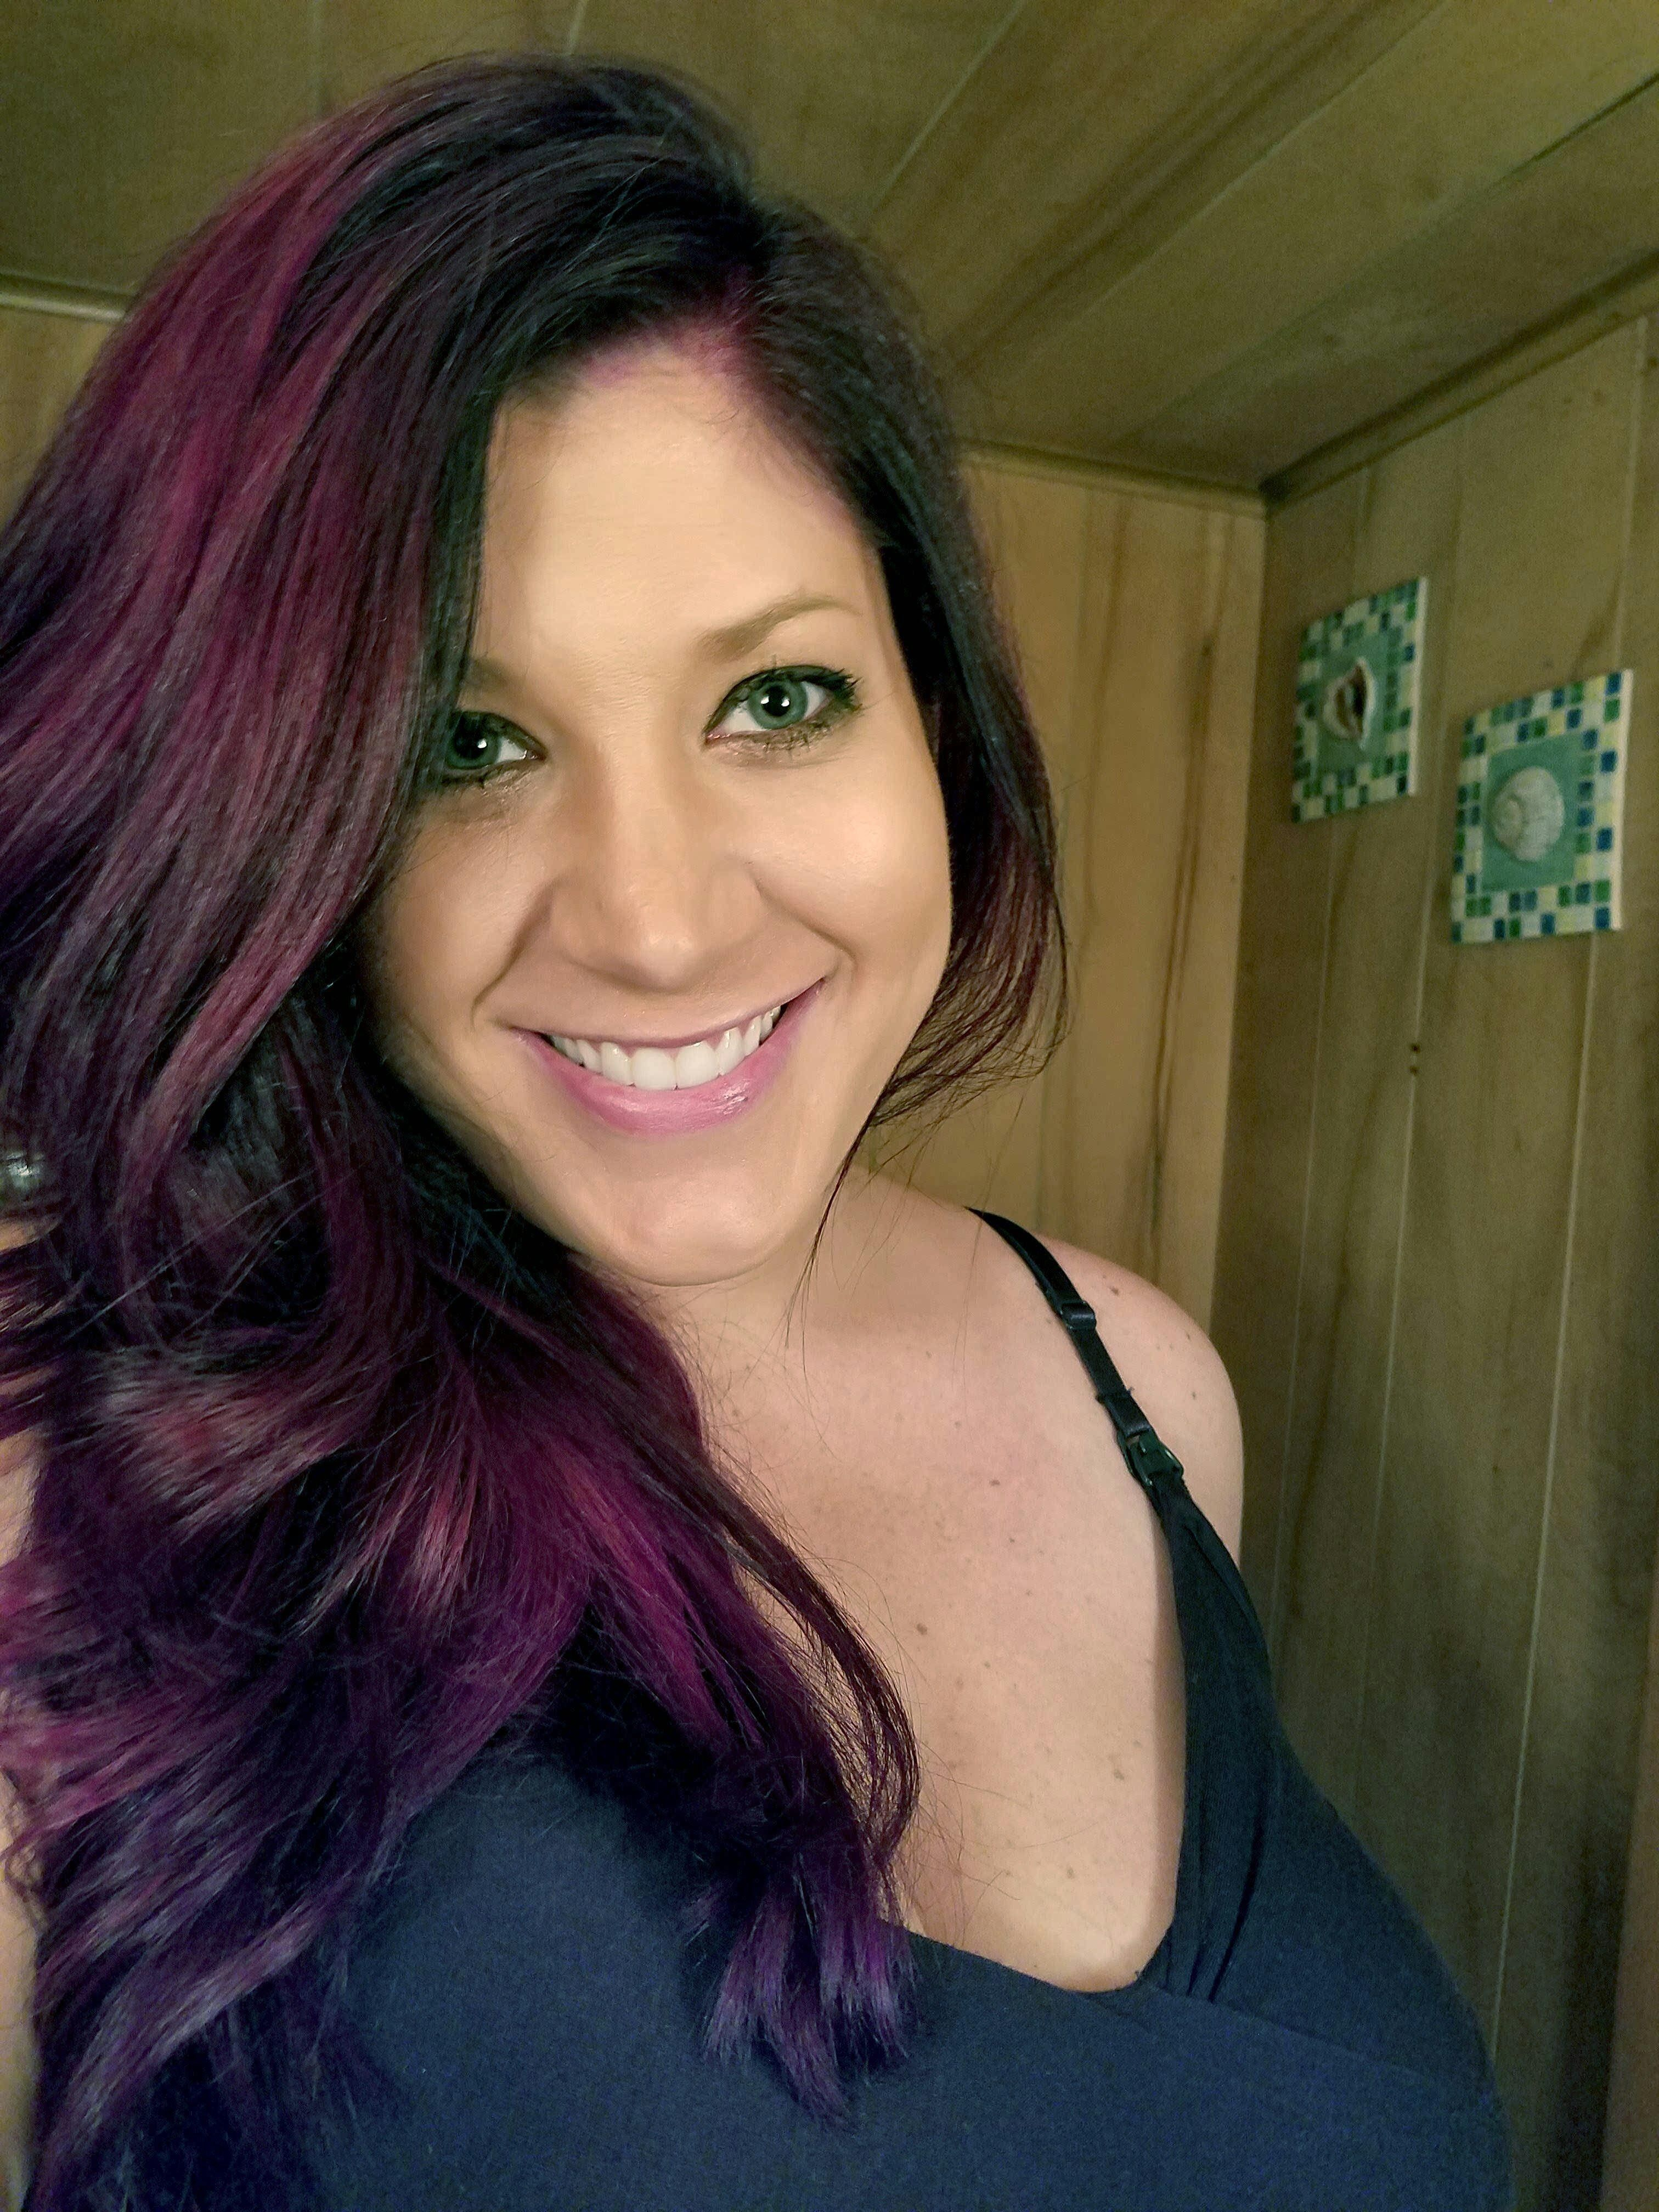 warner robins single women Single warner robins older women interested in senior dating looking for warner robins older women look through the profile previews below to see your perfect date.